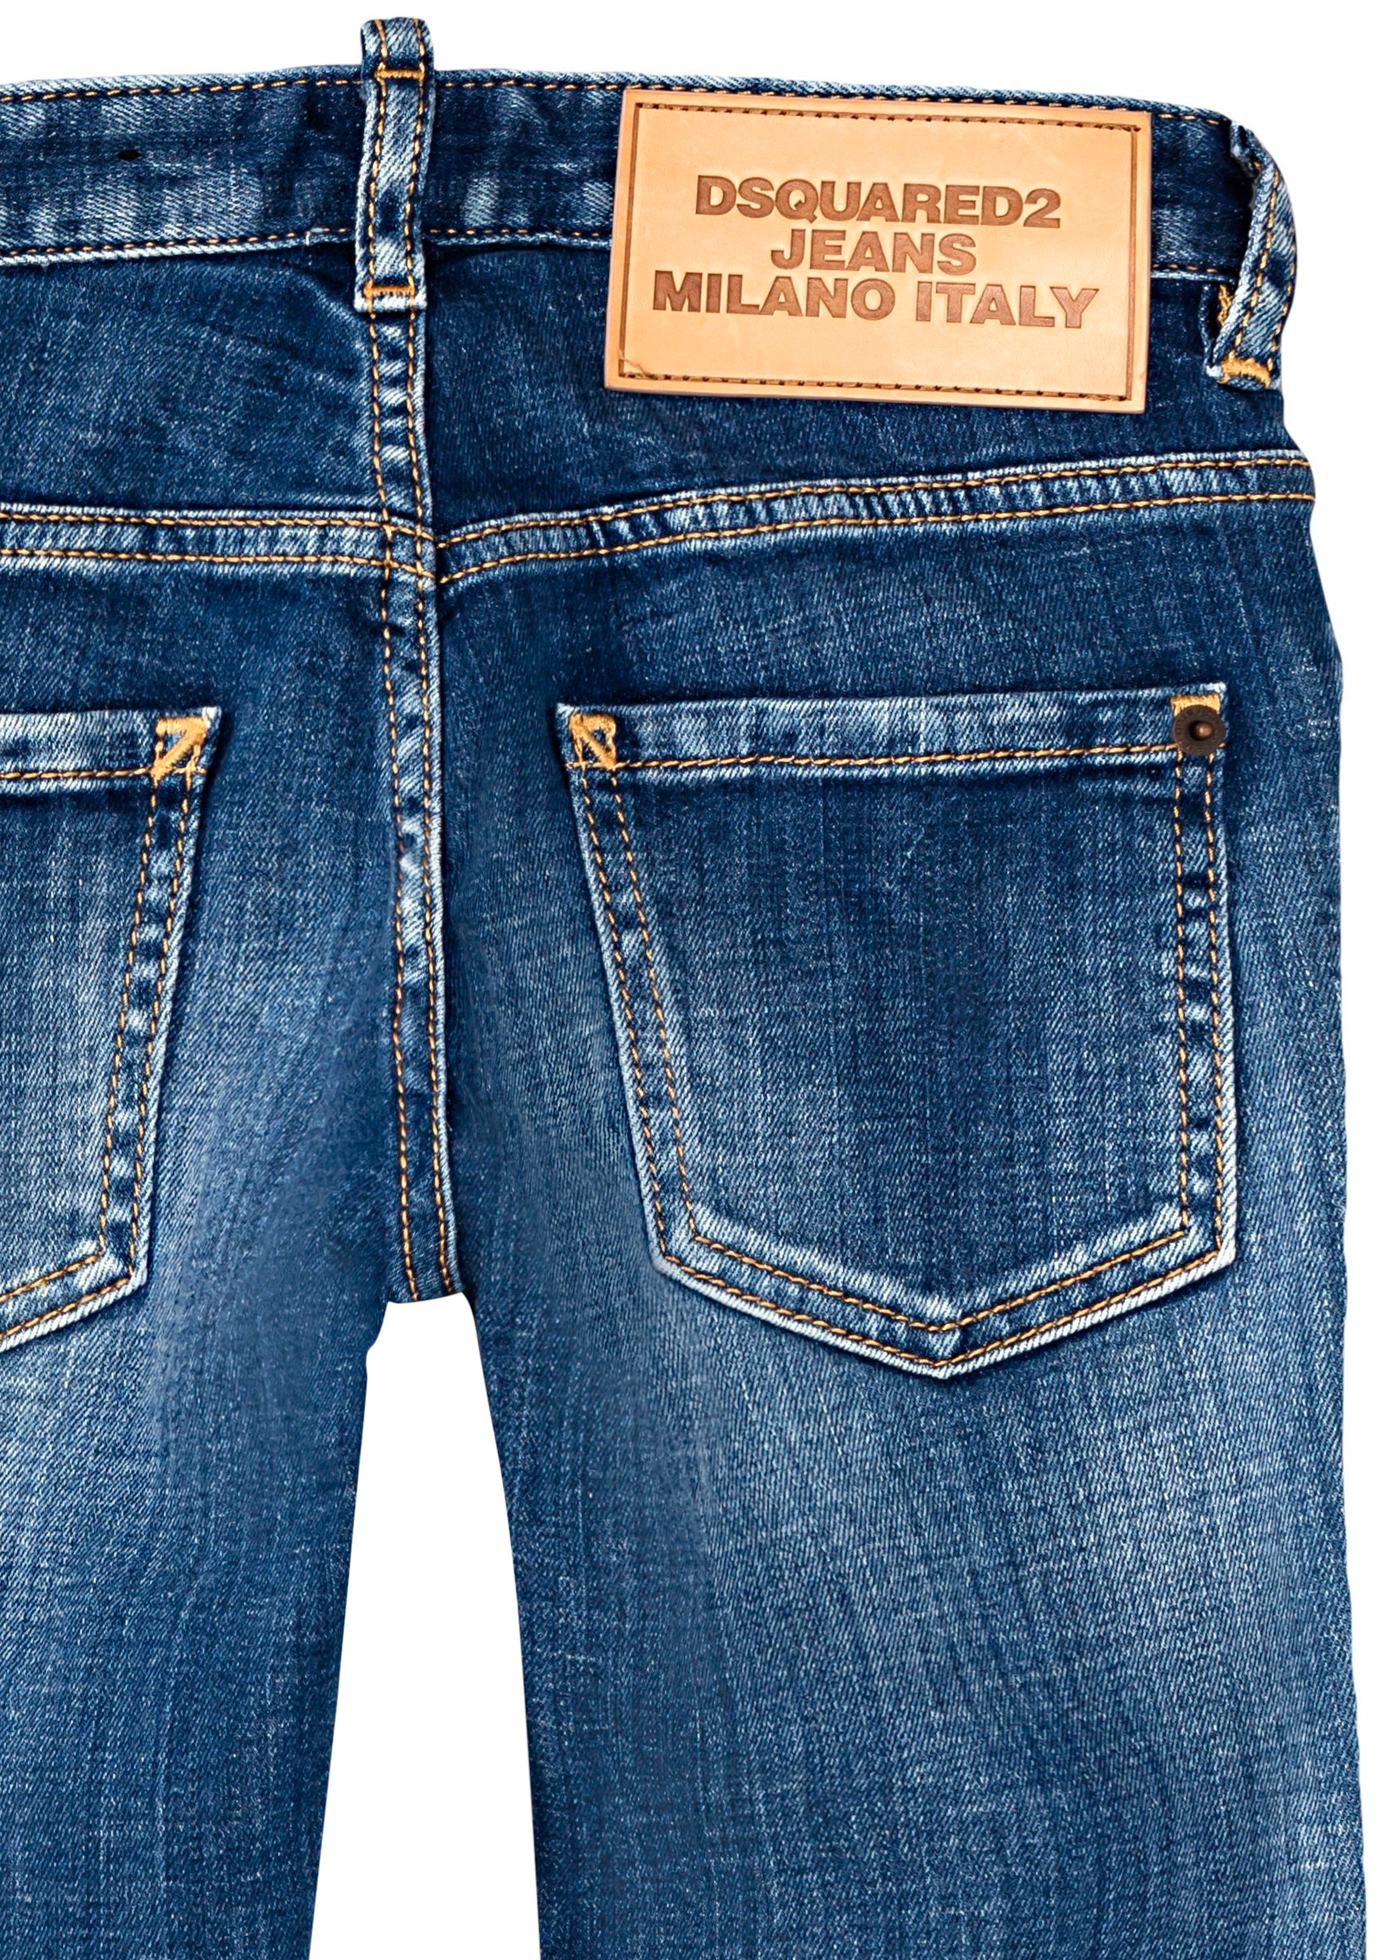 SKATER JEAN TROUSERS image number 3